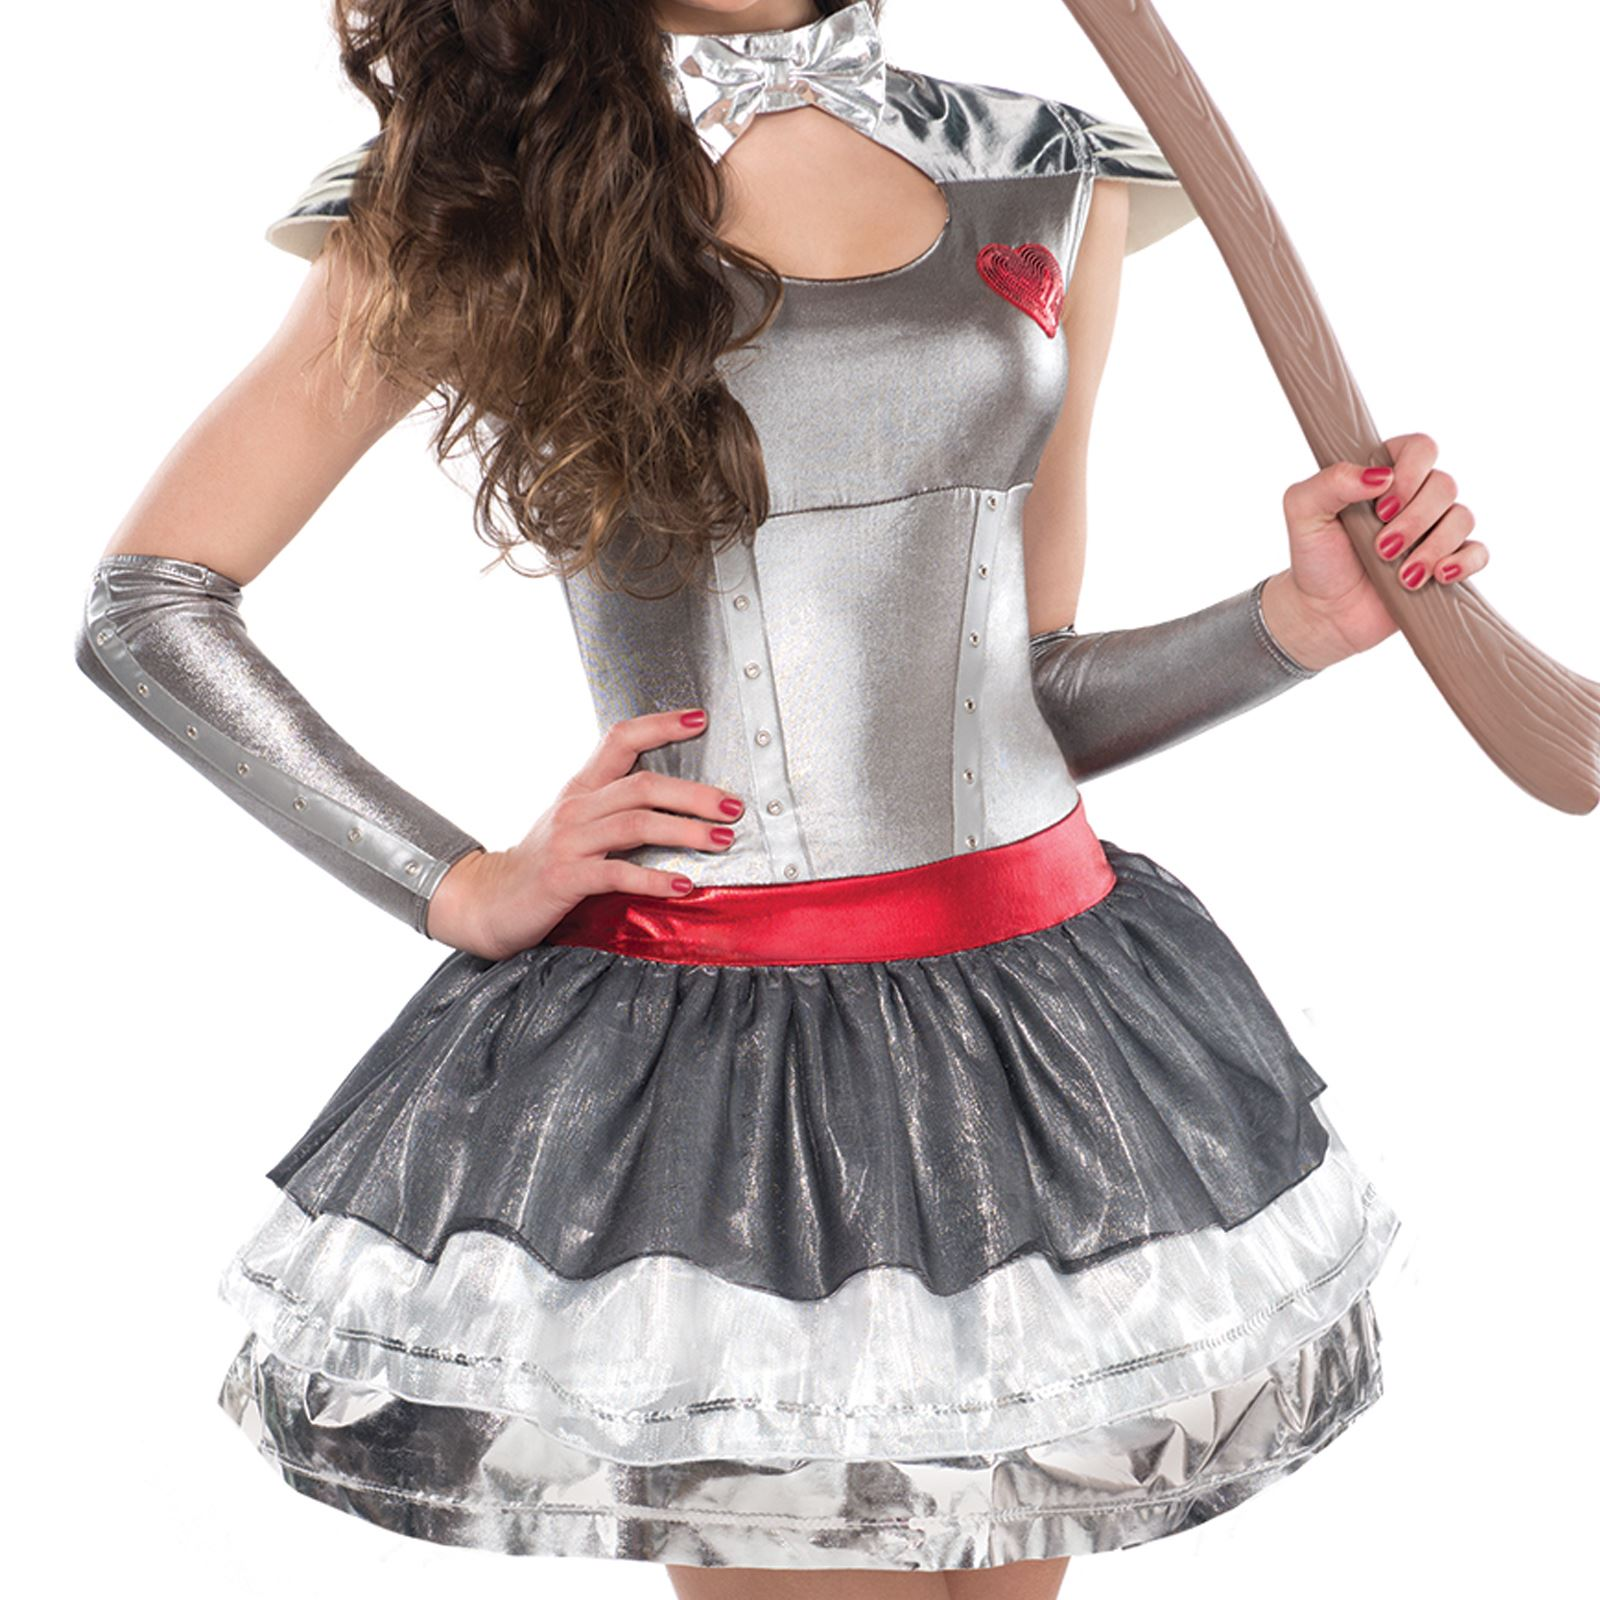 Teen Tin Heartthrob Lady Wizard Fancy Dress Of Oz Girl Party ...